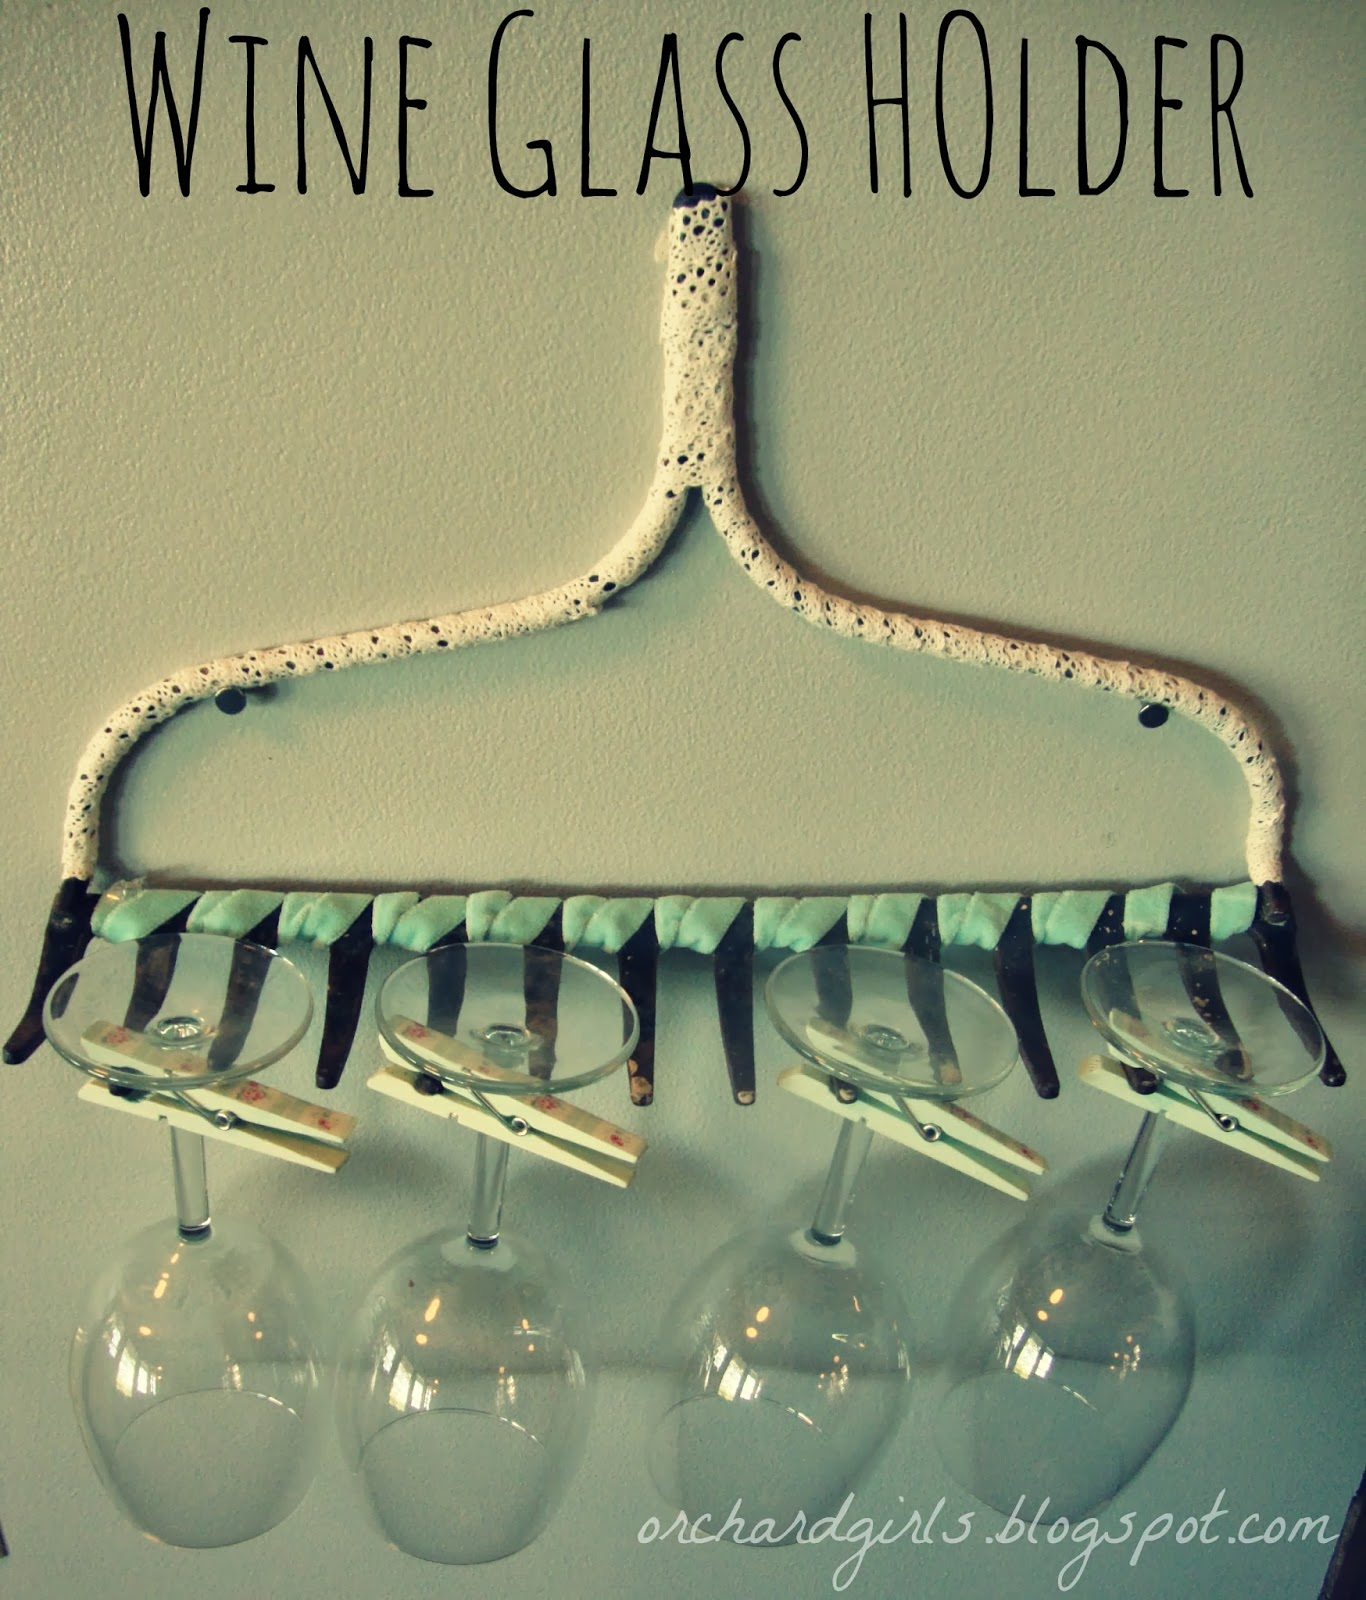 Orchard Girls Thrifty Thursday Diy Wine Glass Rack